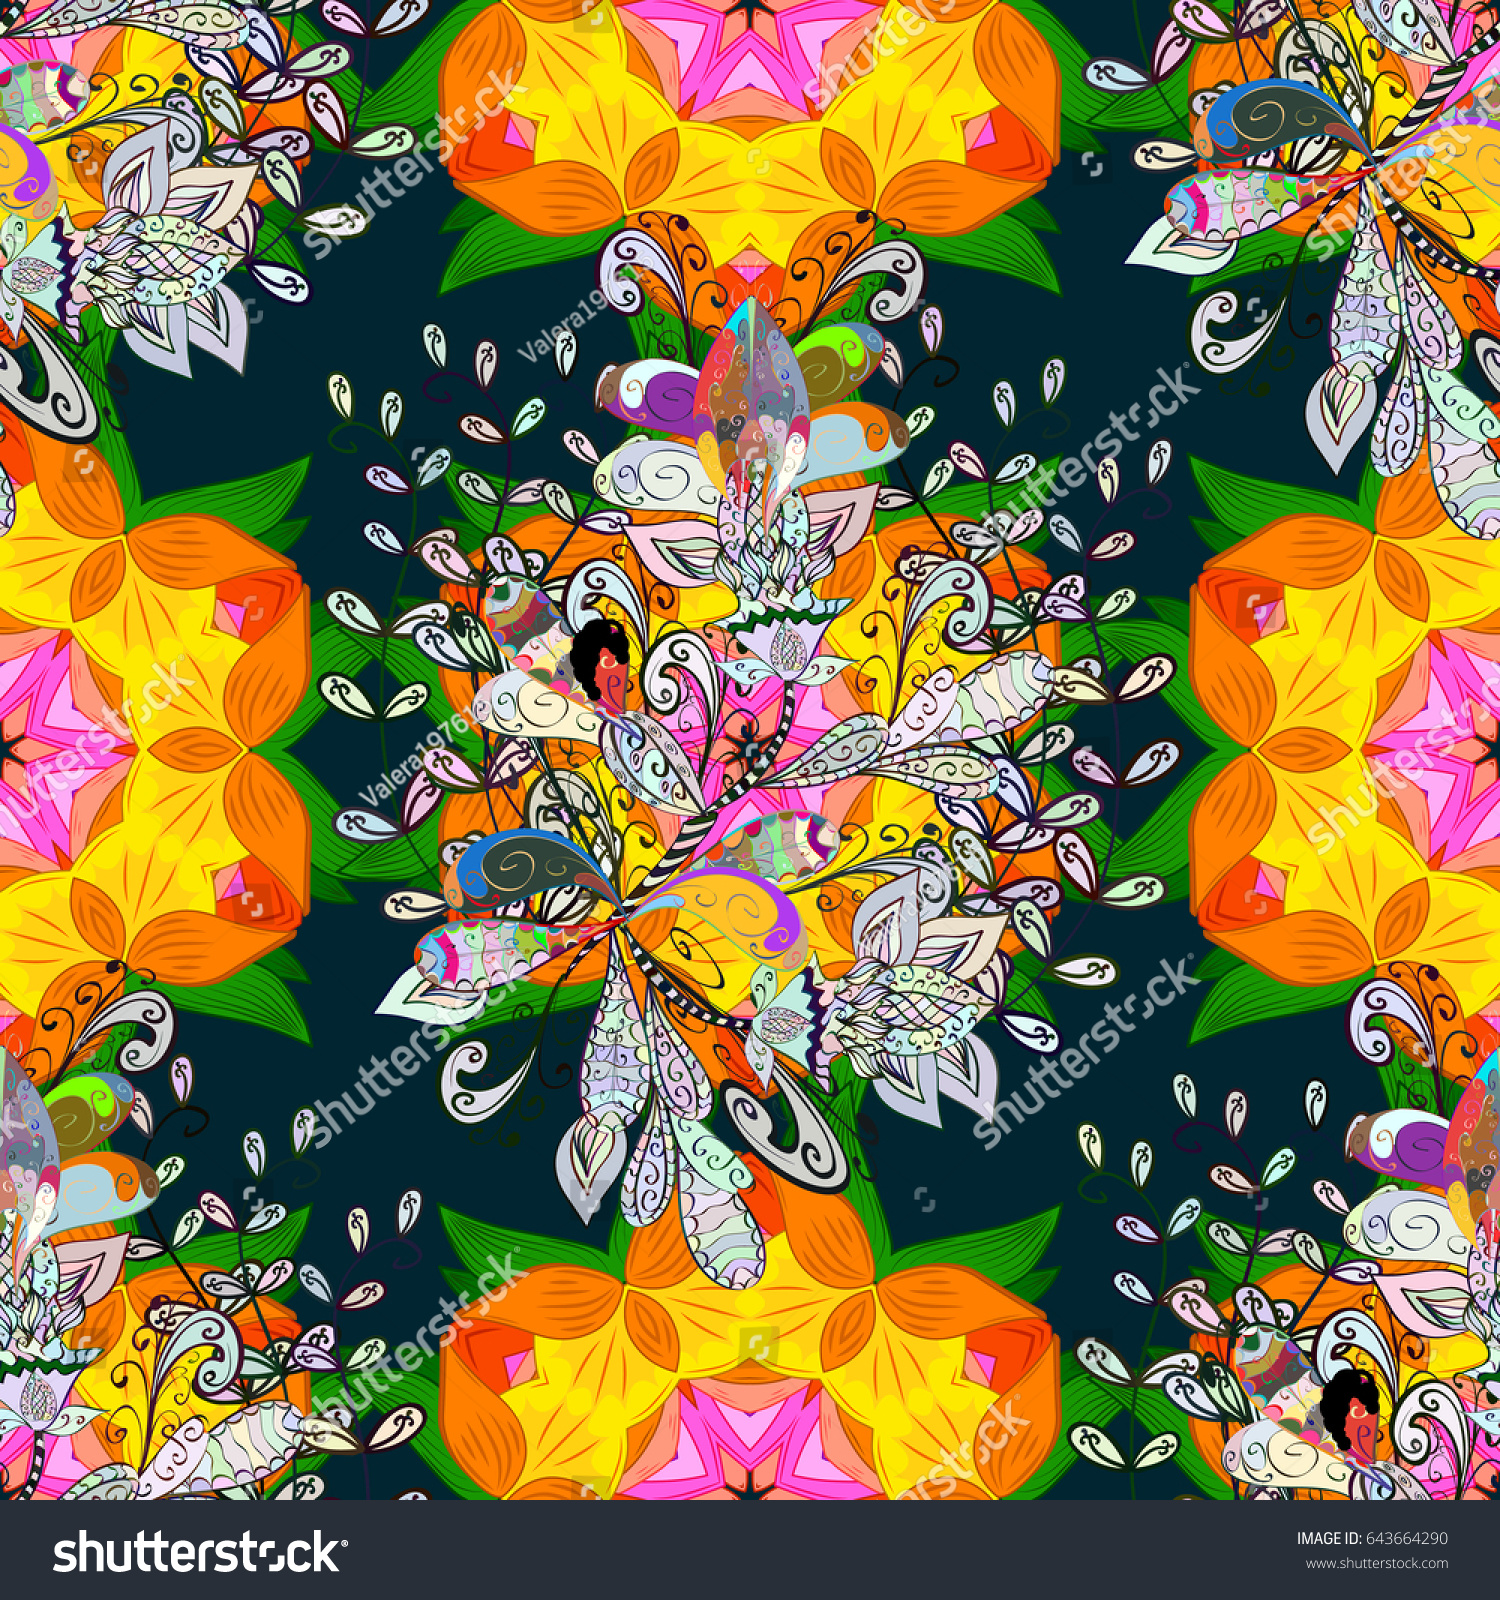 Cute Pattern In Small Flower Motley Illustration Spring Floral